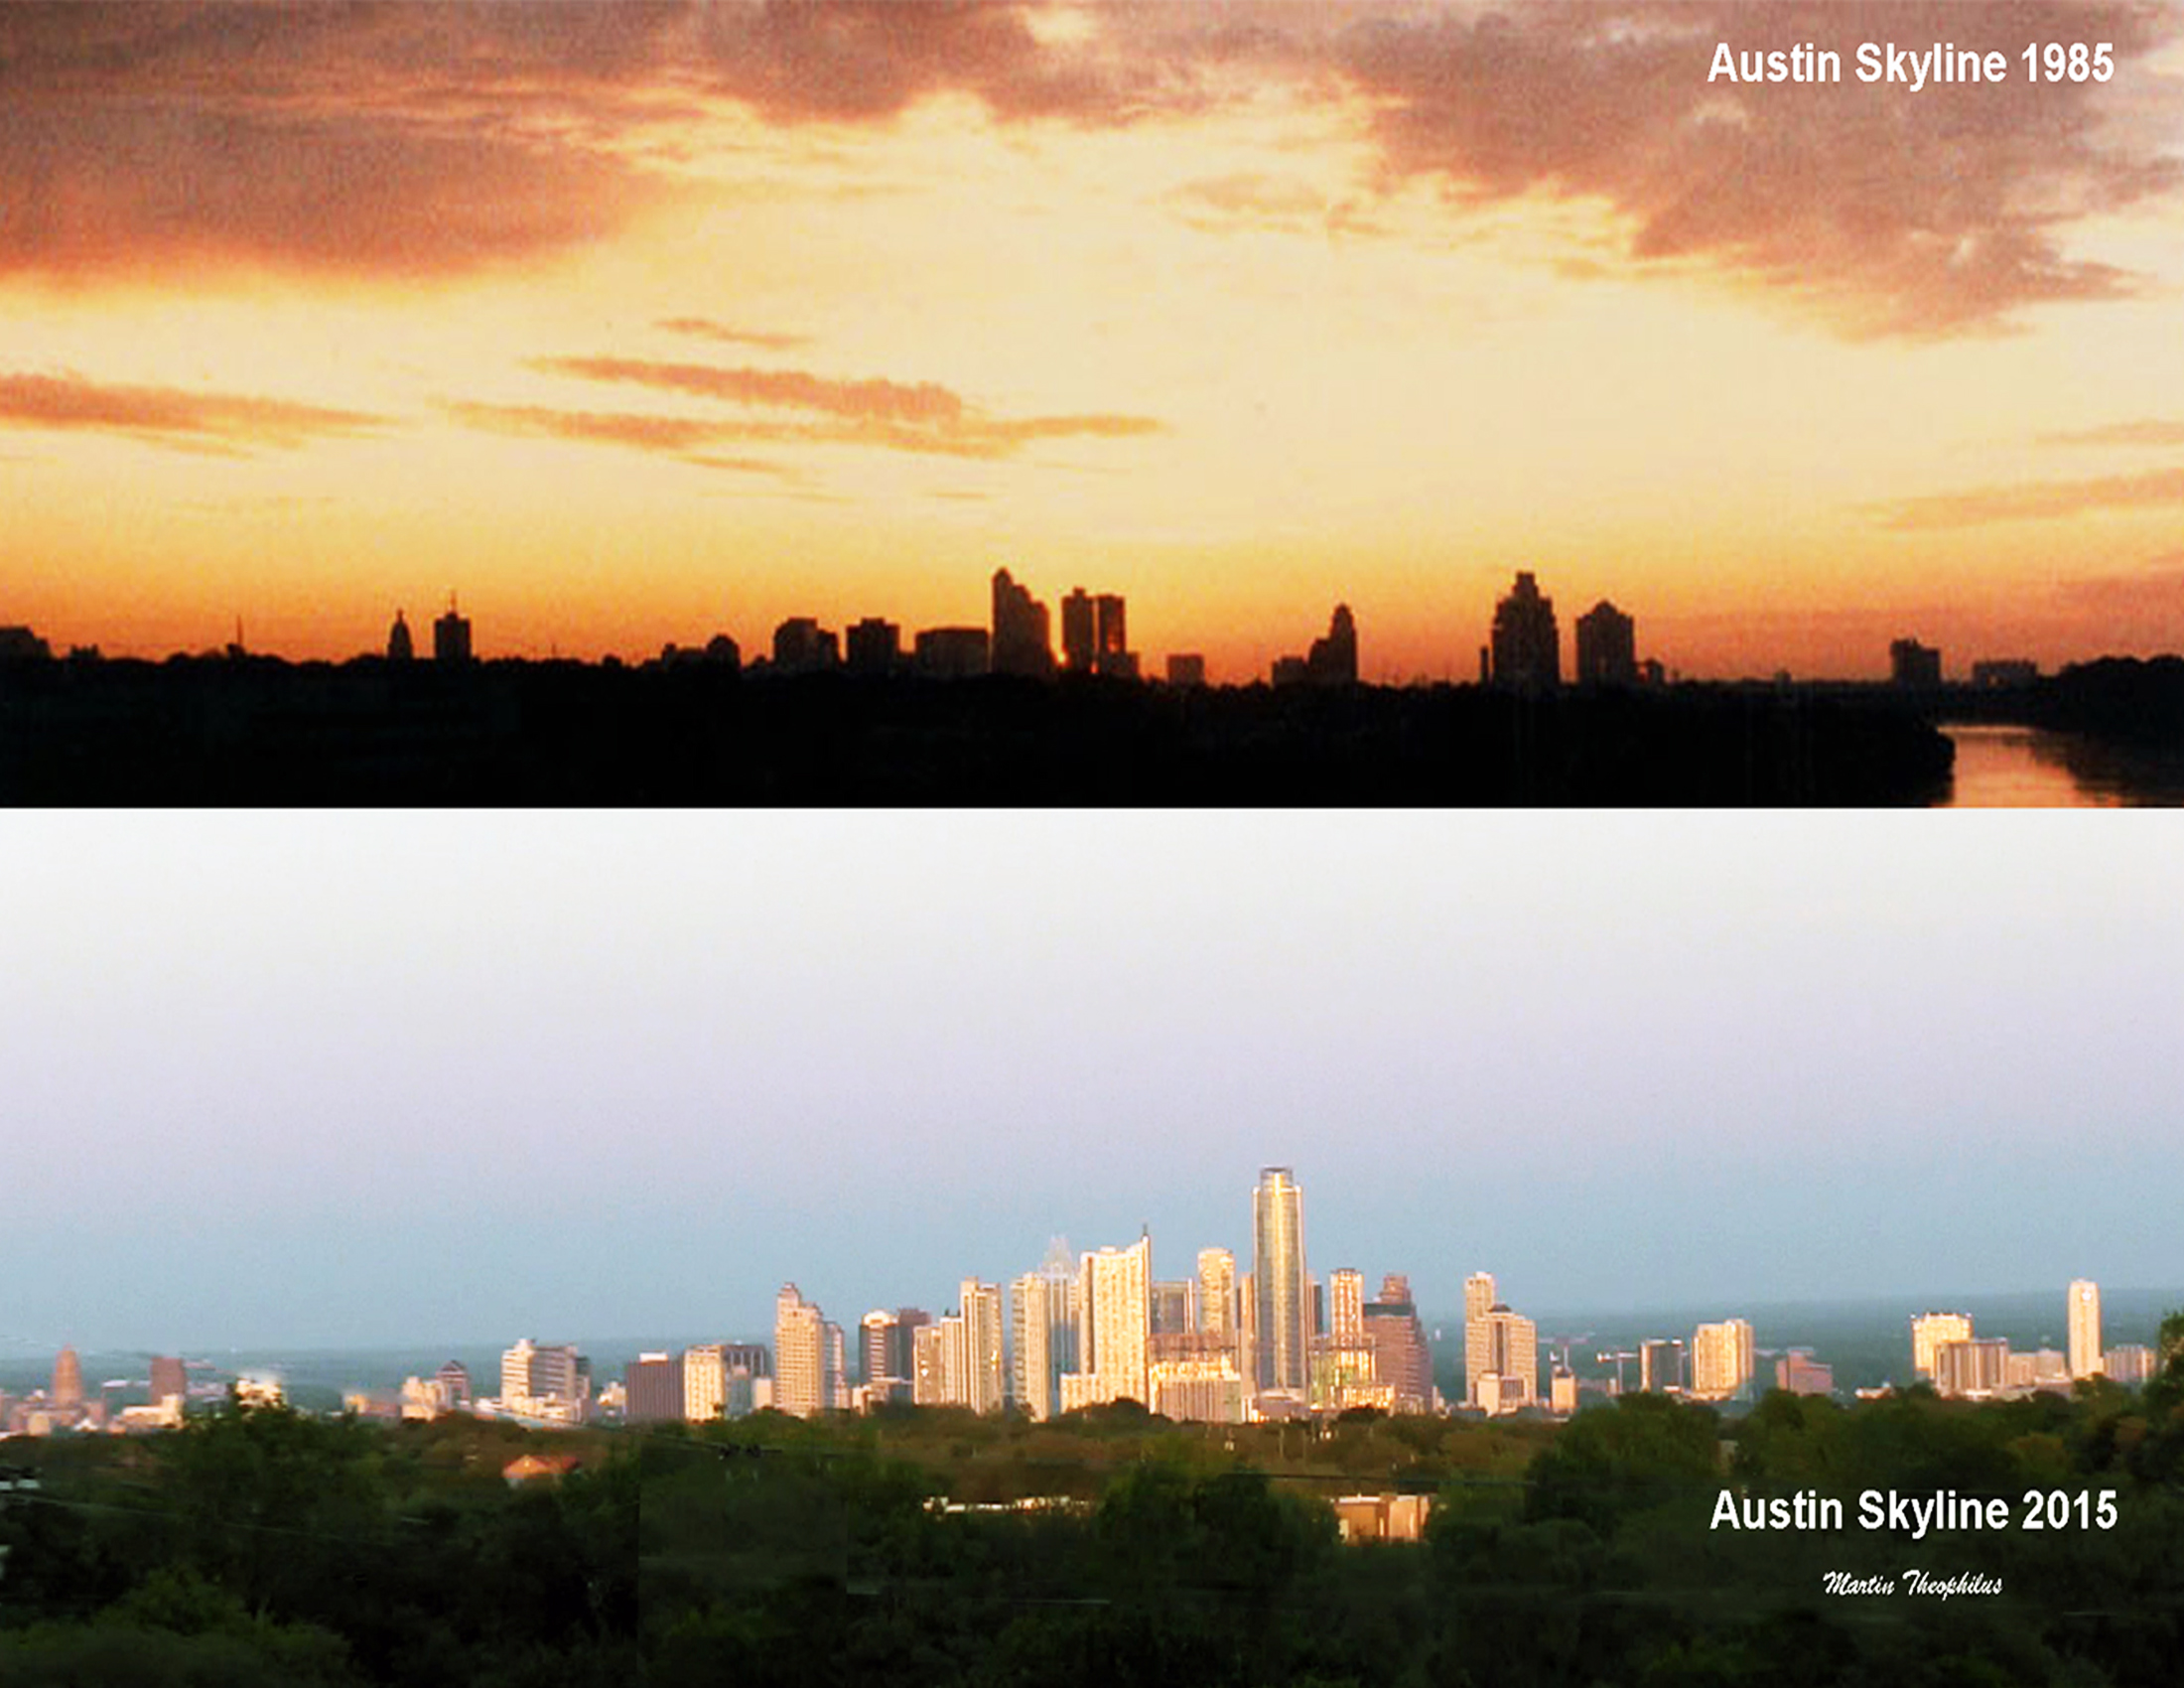 Austin, Texas in 1985 and 2015